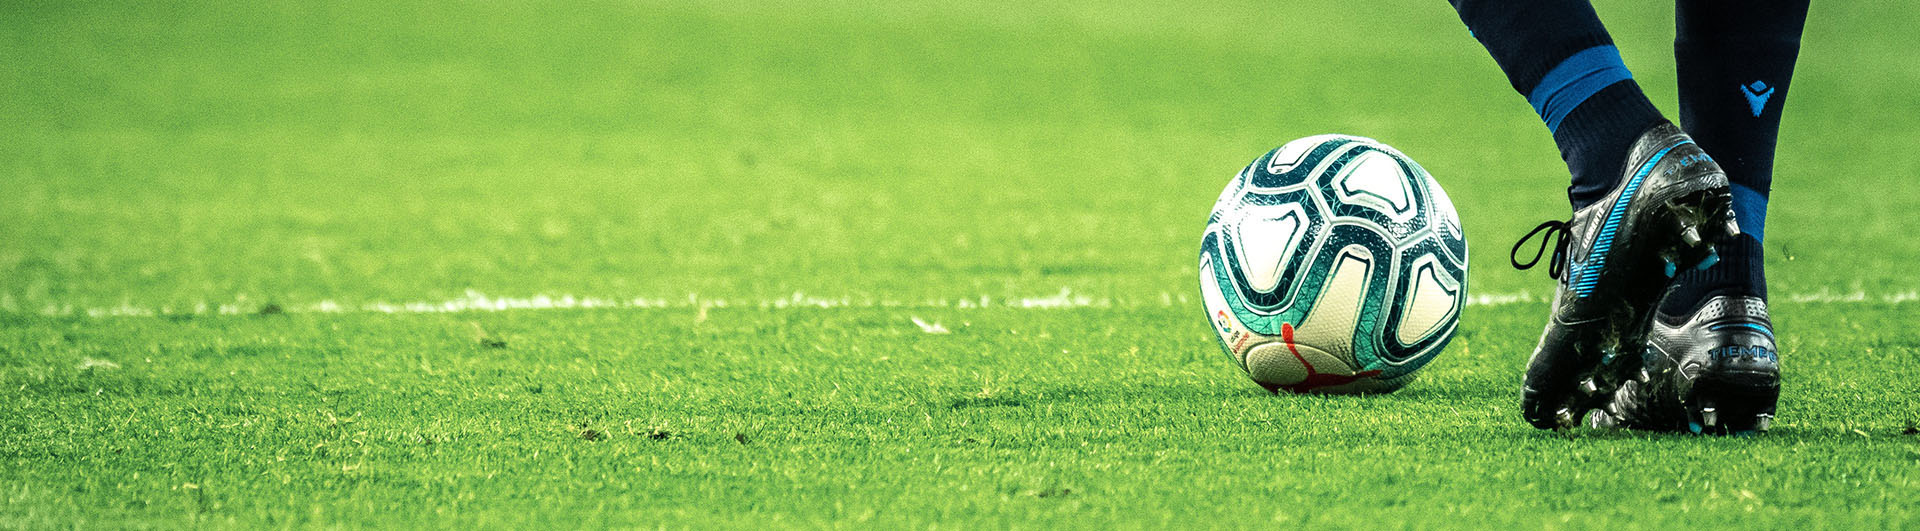 Assignor Mass Youth Soccer